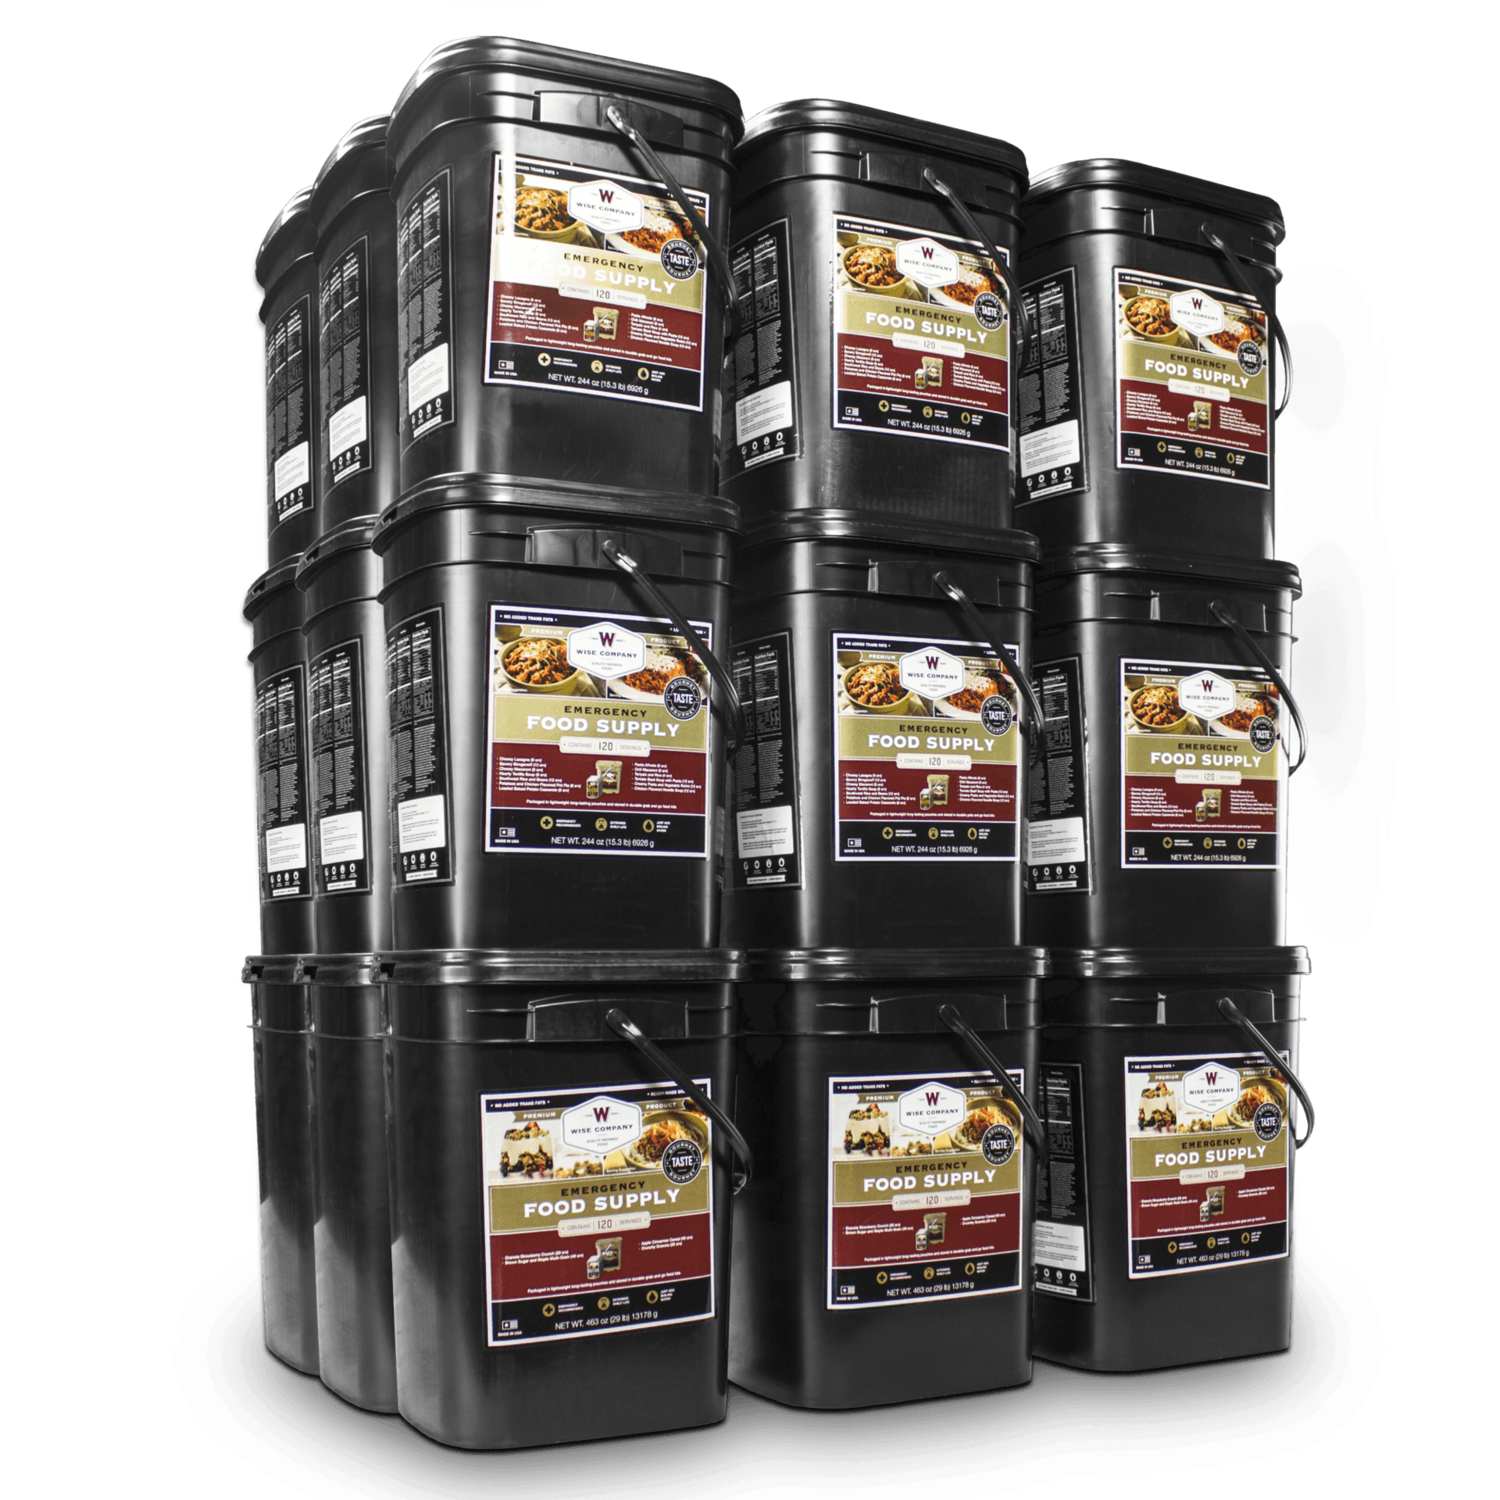 Ultimate Family Survival Package 12 Months 4320 Serving Package 744 Lbs Includes 24 120 Survival Food Storage Wise Food Storage Emergency Food Storage